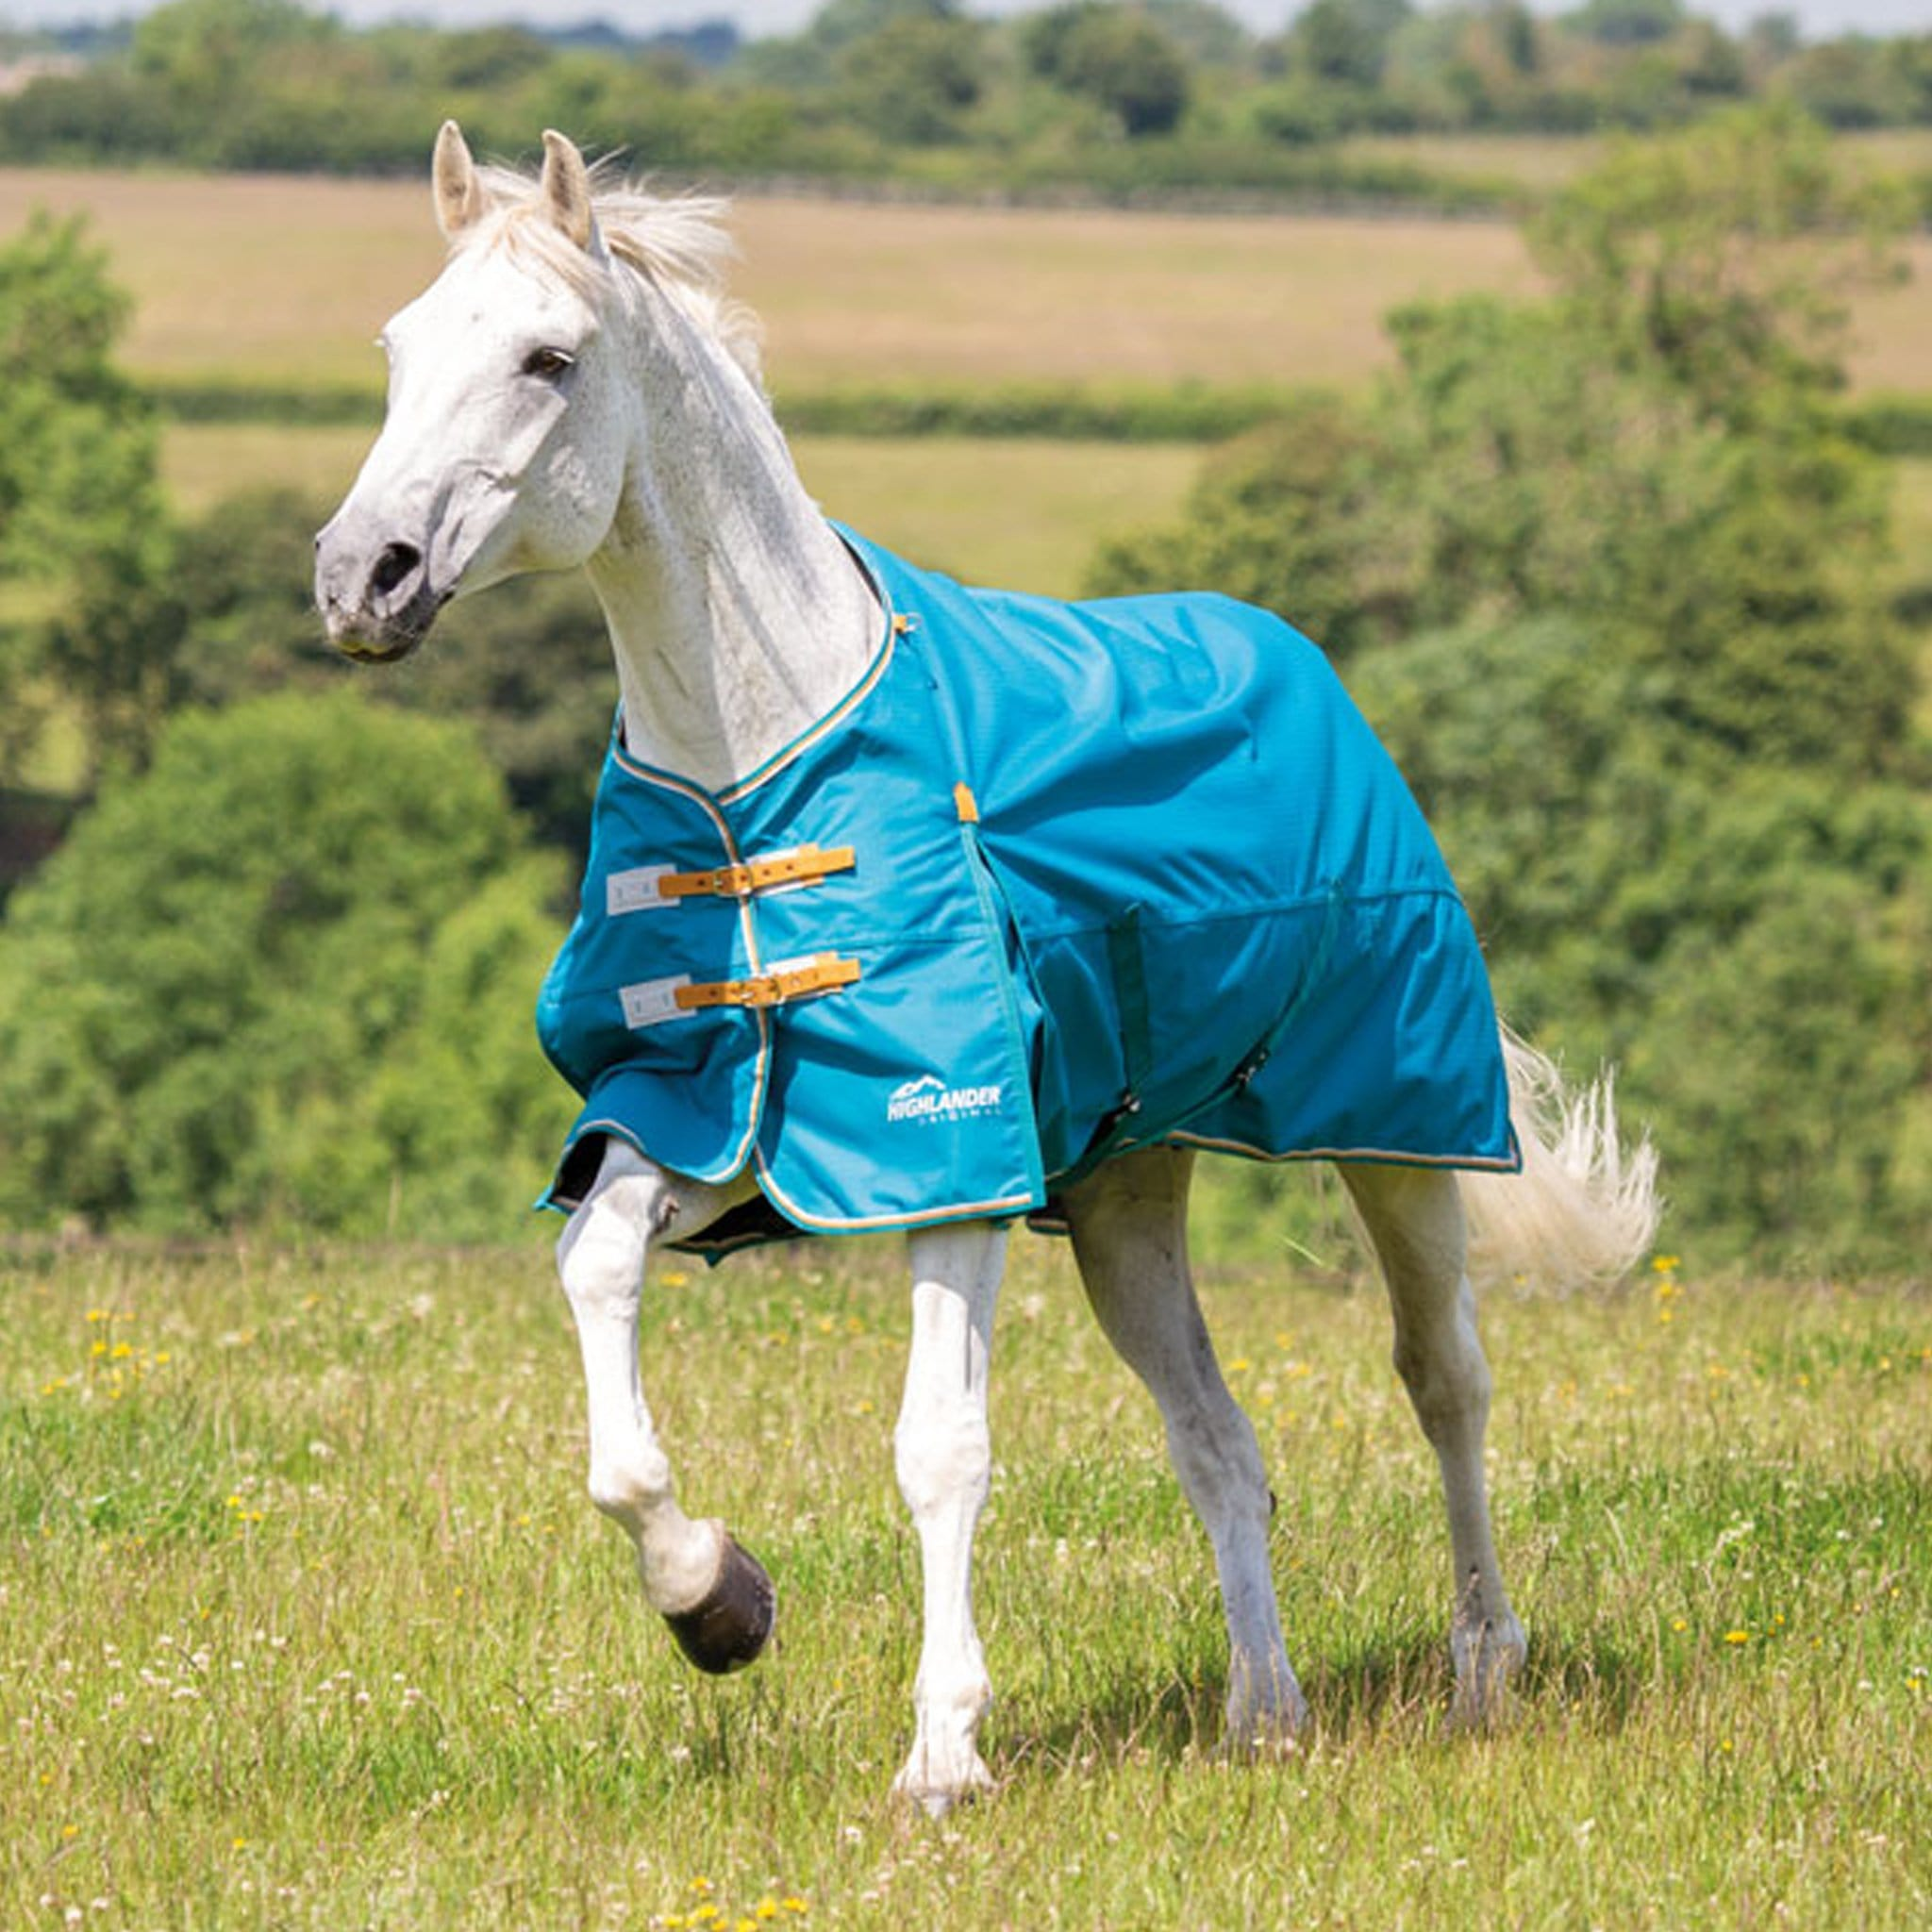 Shires Highlander Original Lightweight 0g Standard Turnout Rug 9350 Teal and Yellow